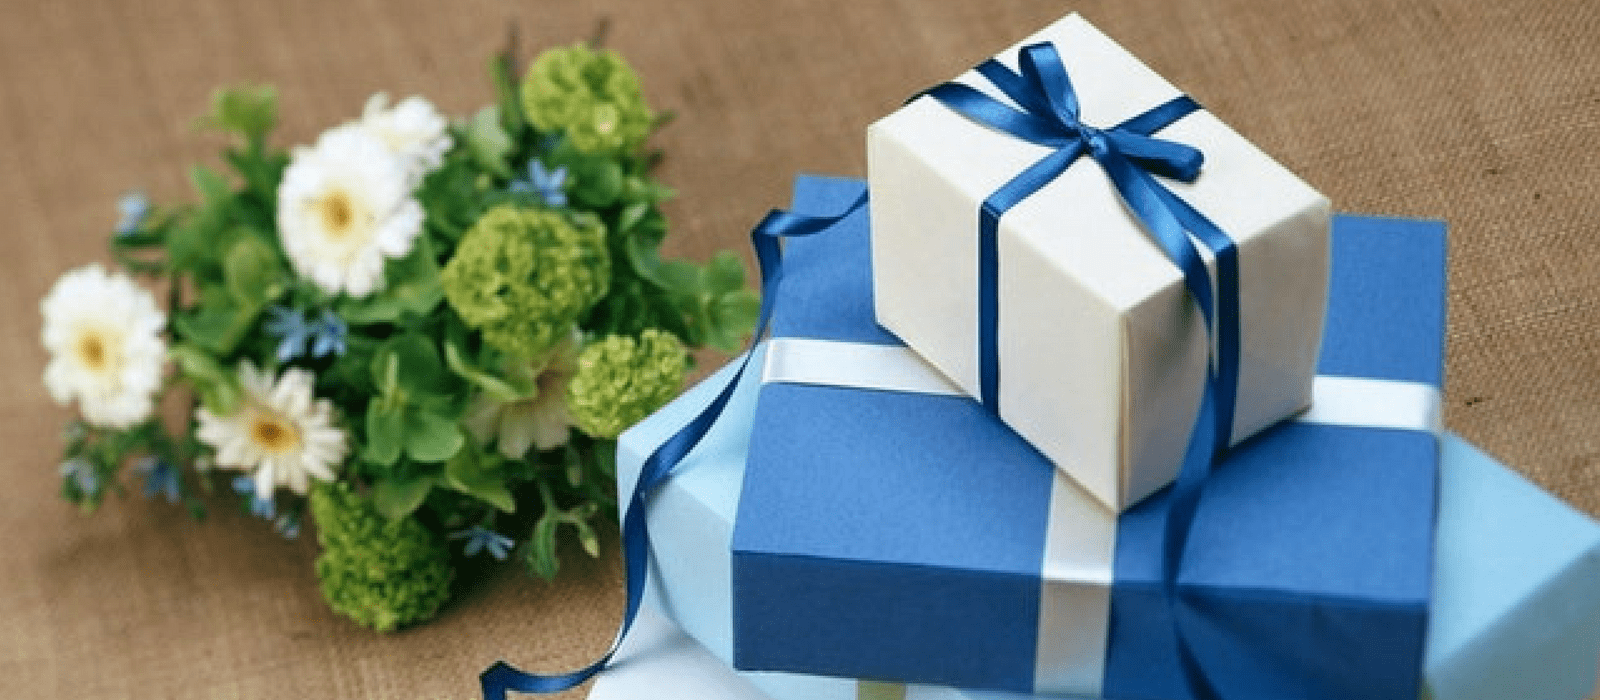 20 Gift Ideas for Paraplegics | Gifts for People in Wheelchairs that Rock